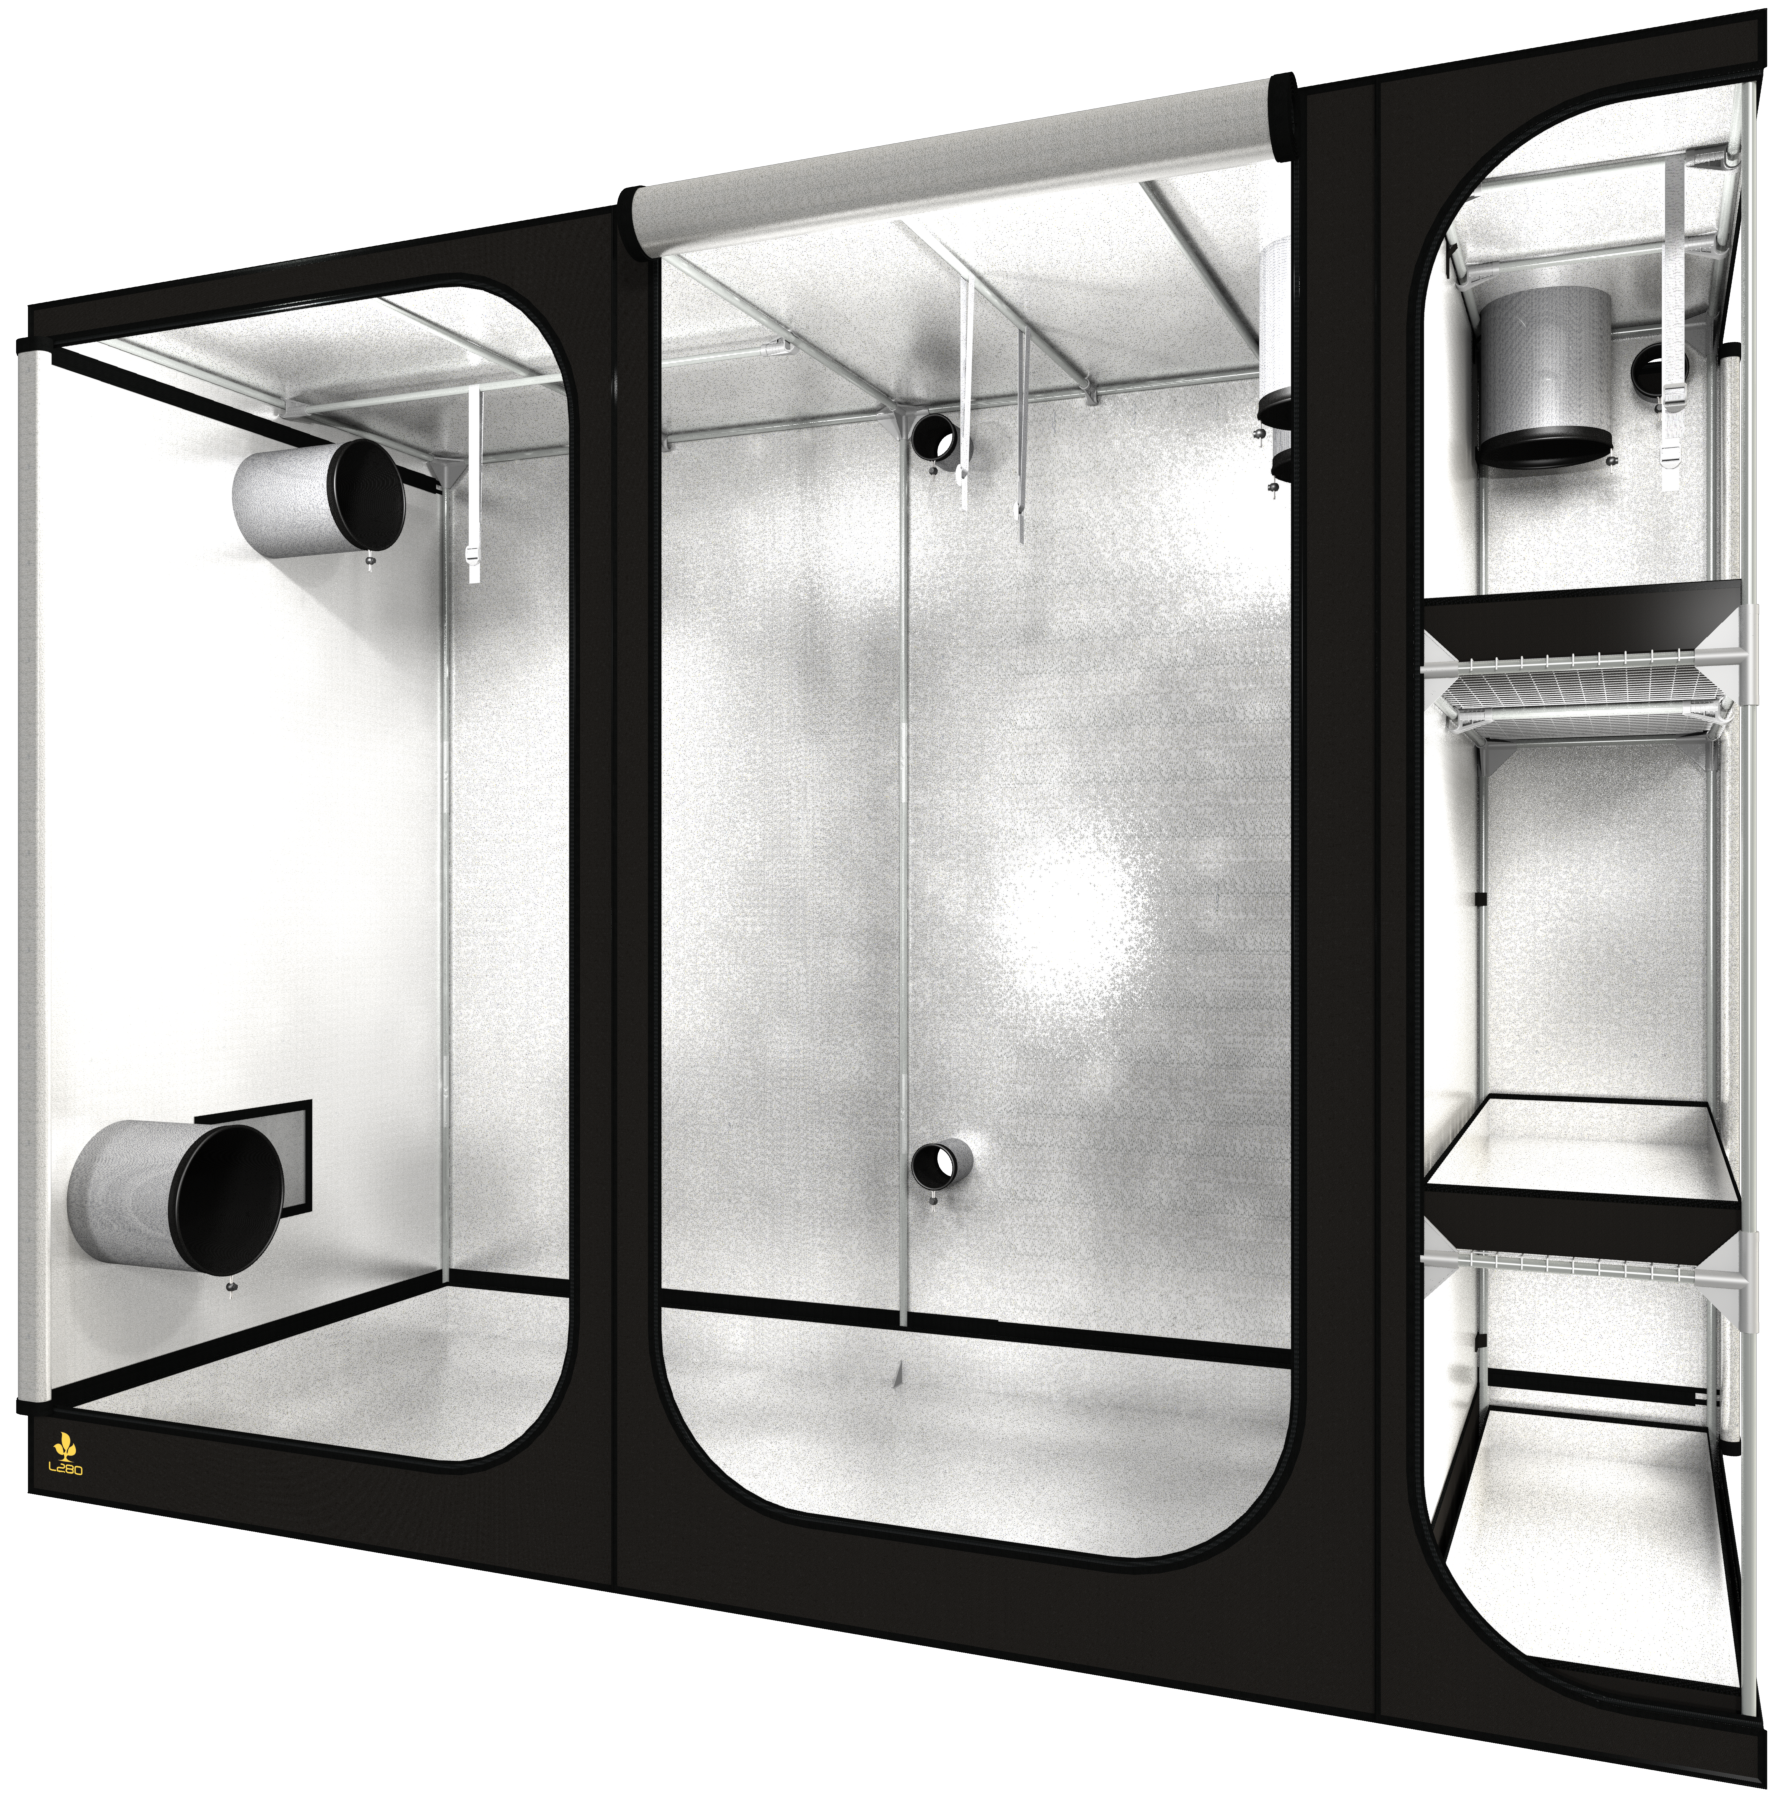 Dark room Lodge L280 REV 2,5 280X120X210cm